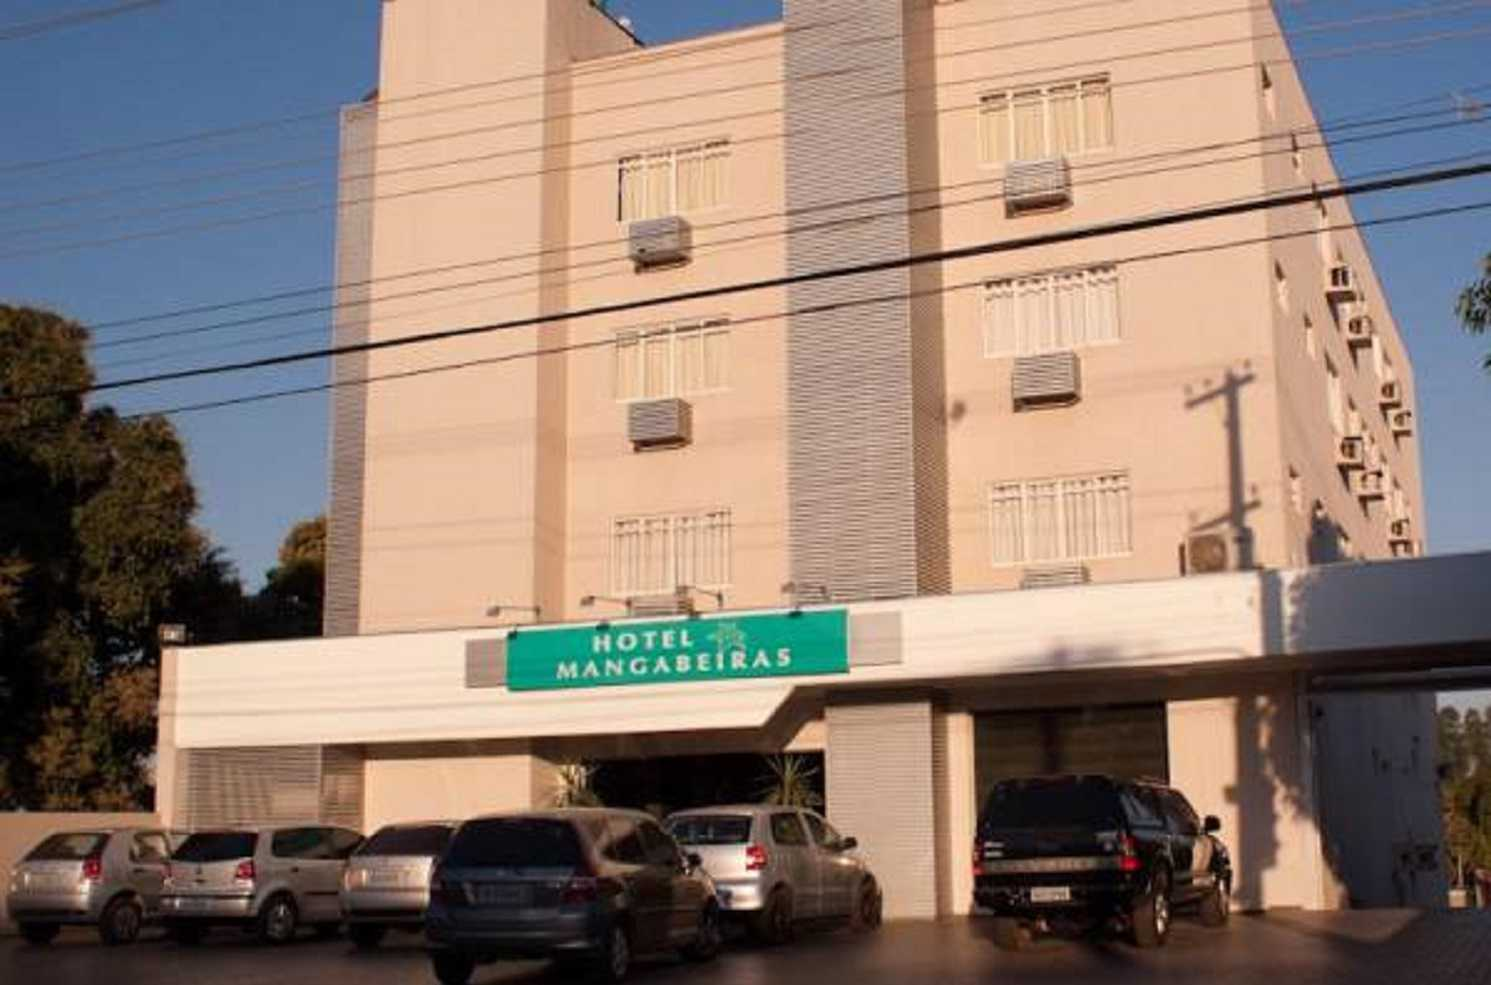 4.0 Km from the City Center and Cuiabá Airport